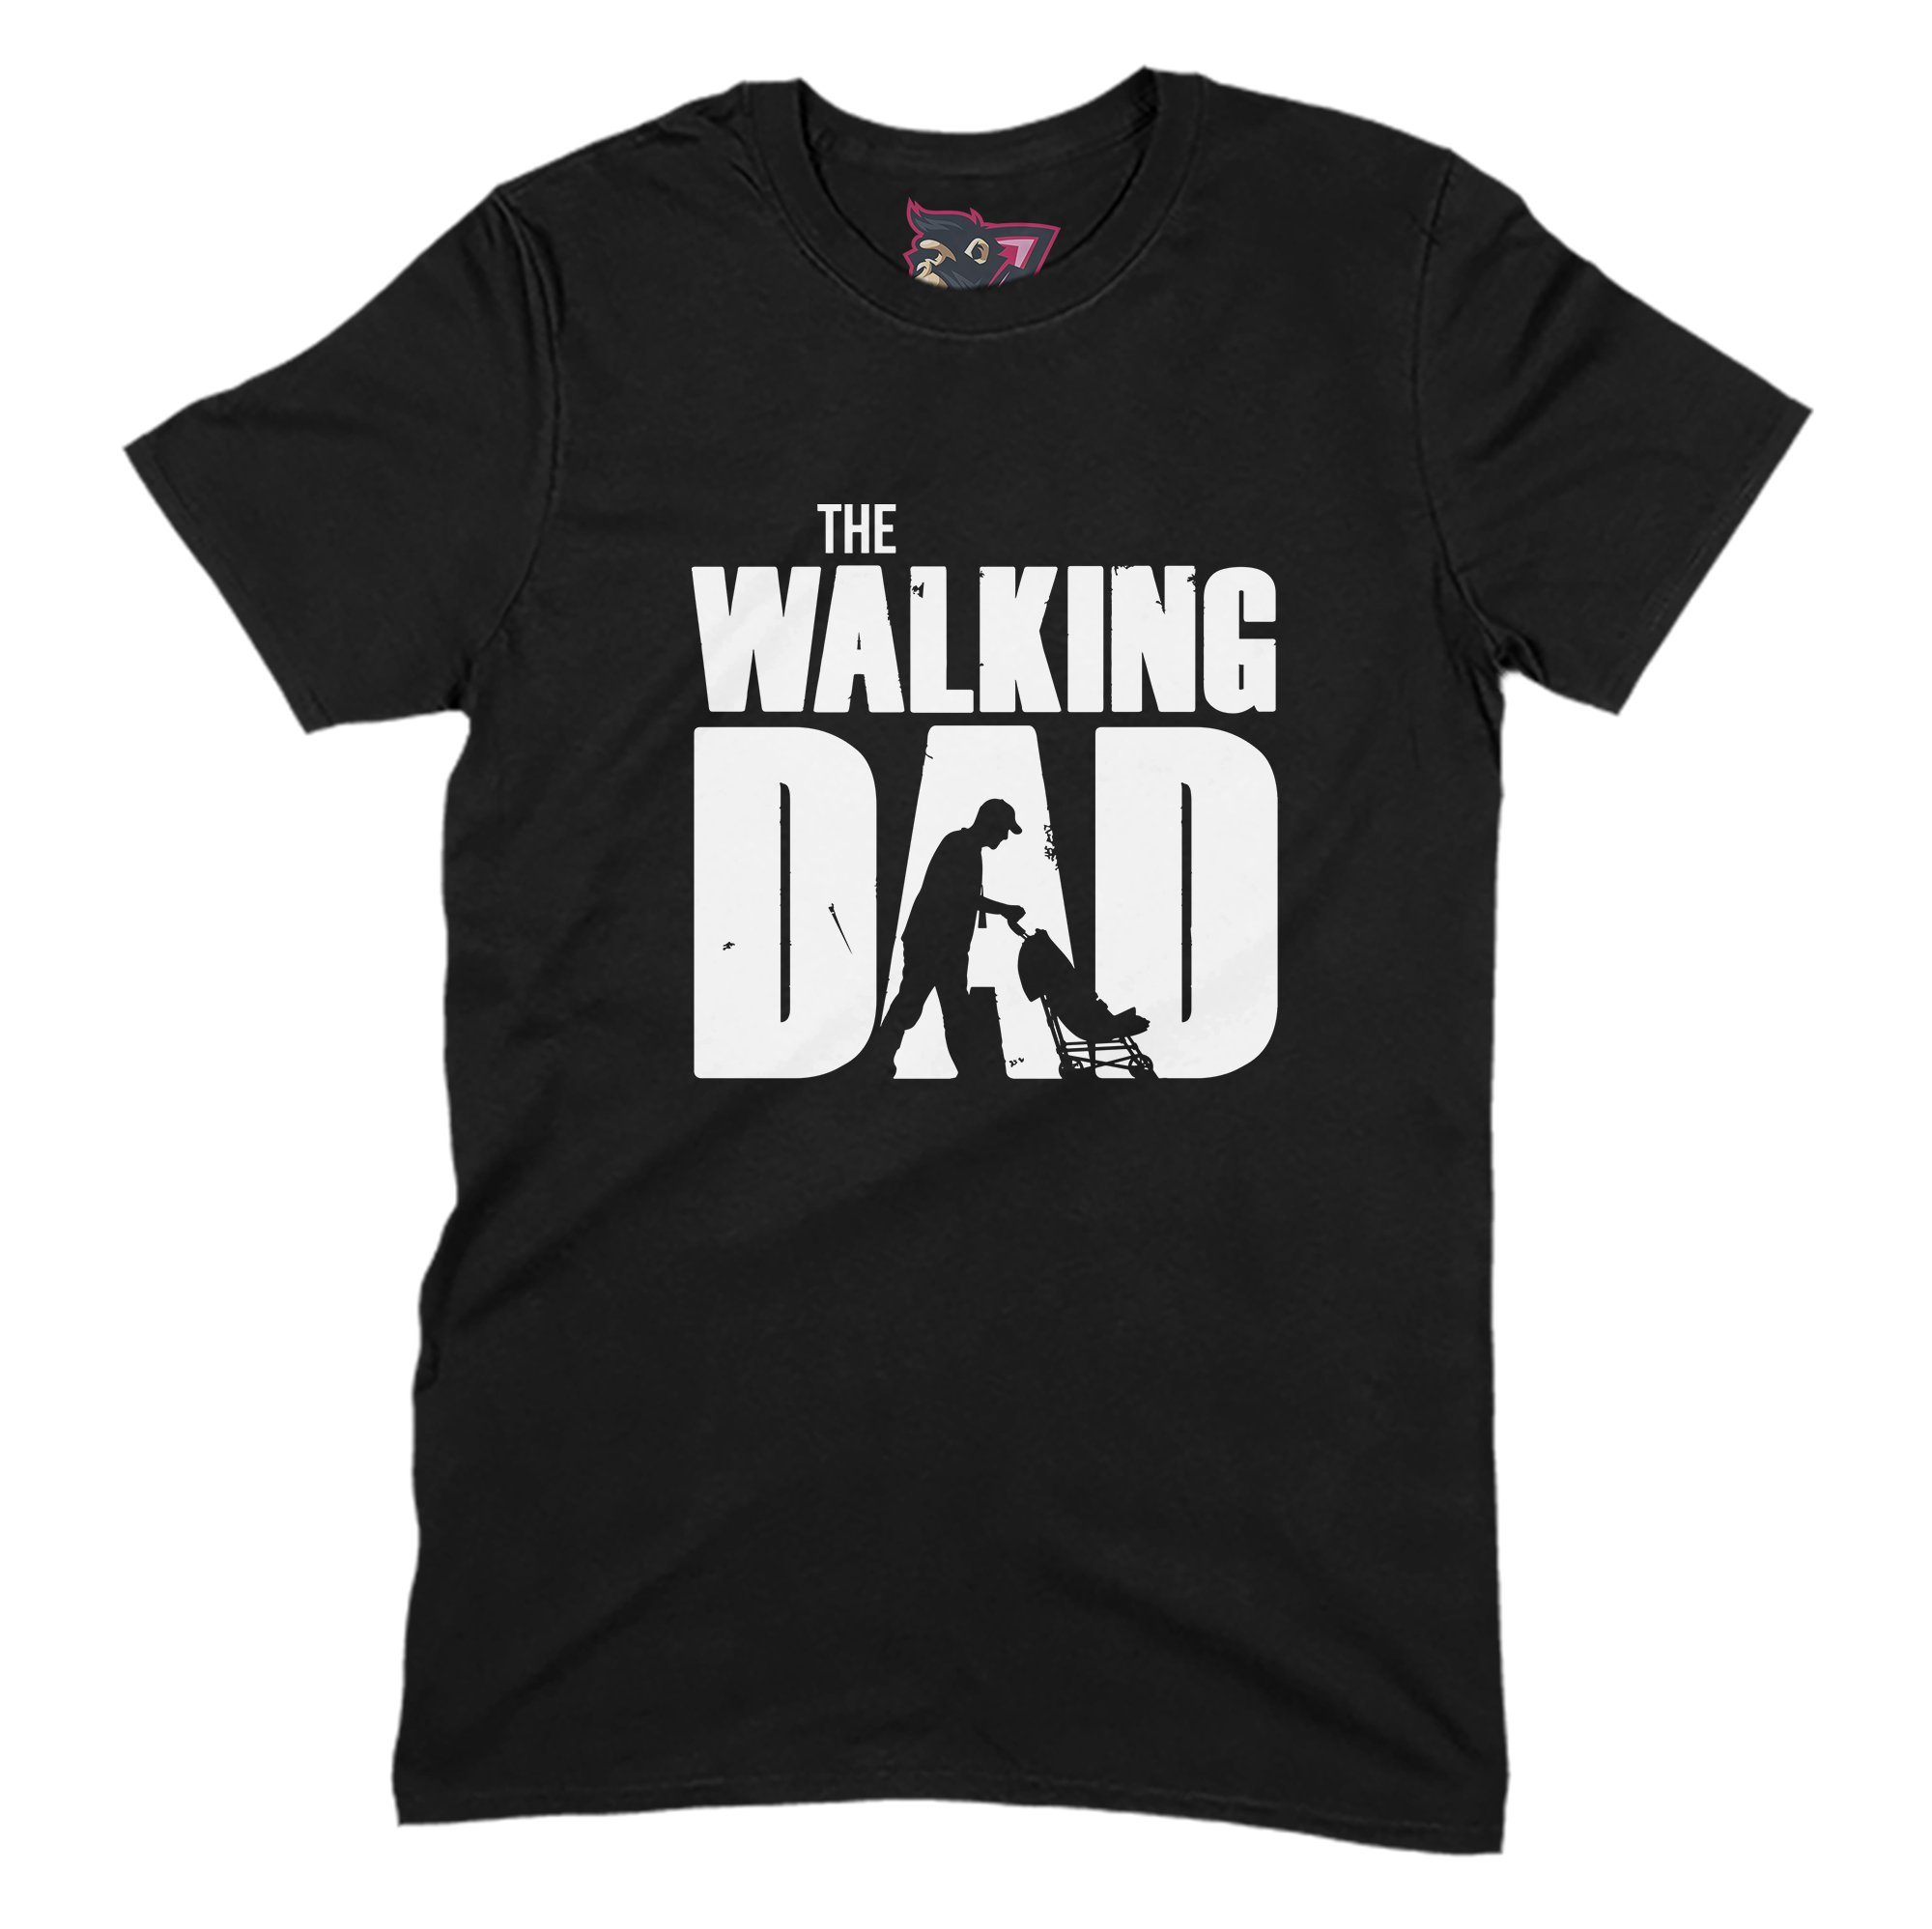 The Walking Dad Primate Novelty Unisex T-Shirt Adults: S